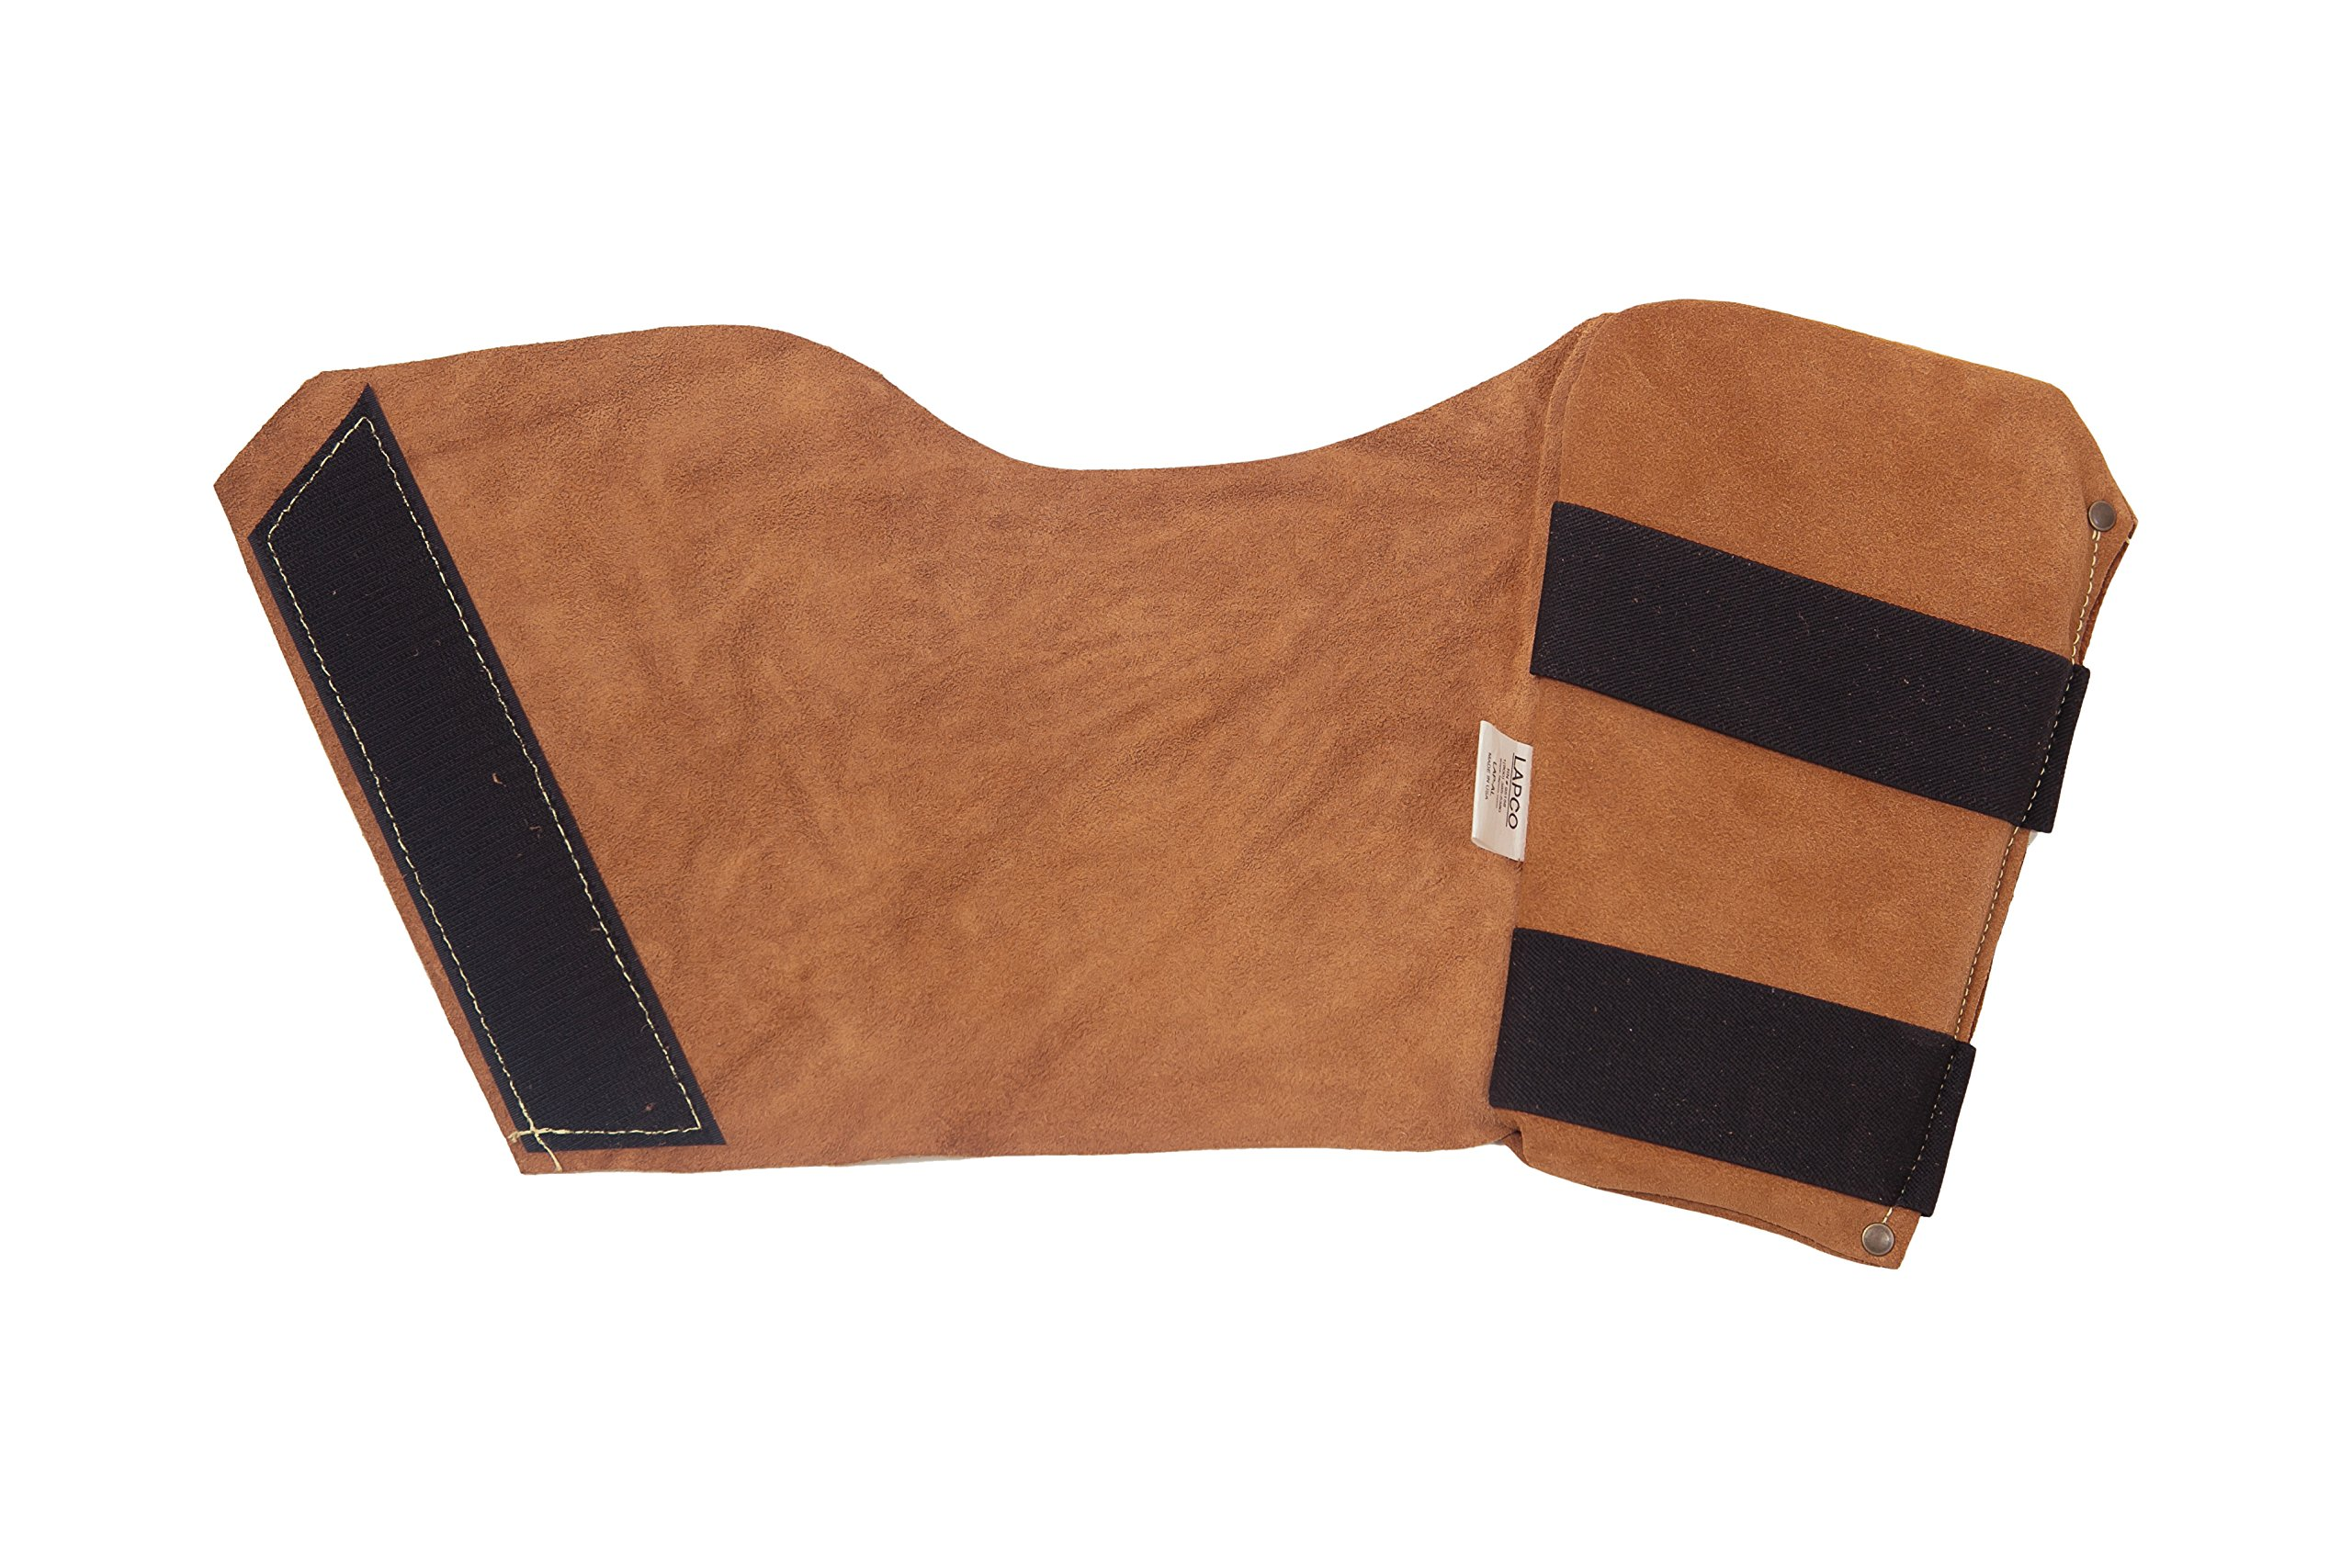 Lapco Lap-AR Leather Arm Pad, Right Arm, One Size, Tan by LAPCOFR